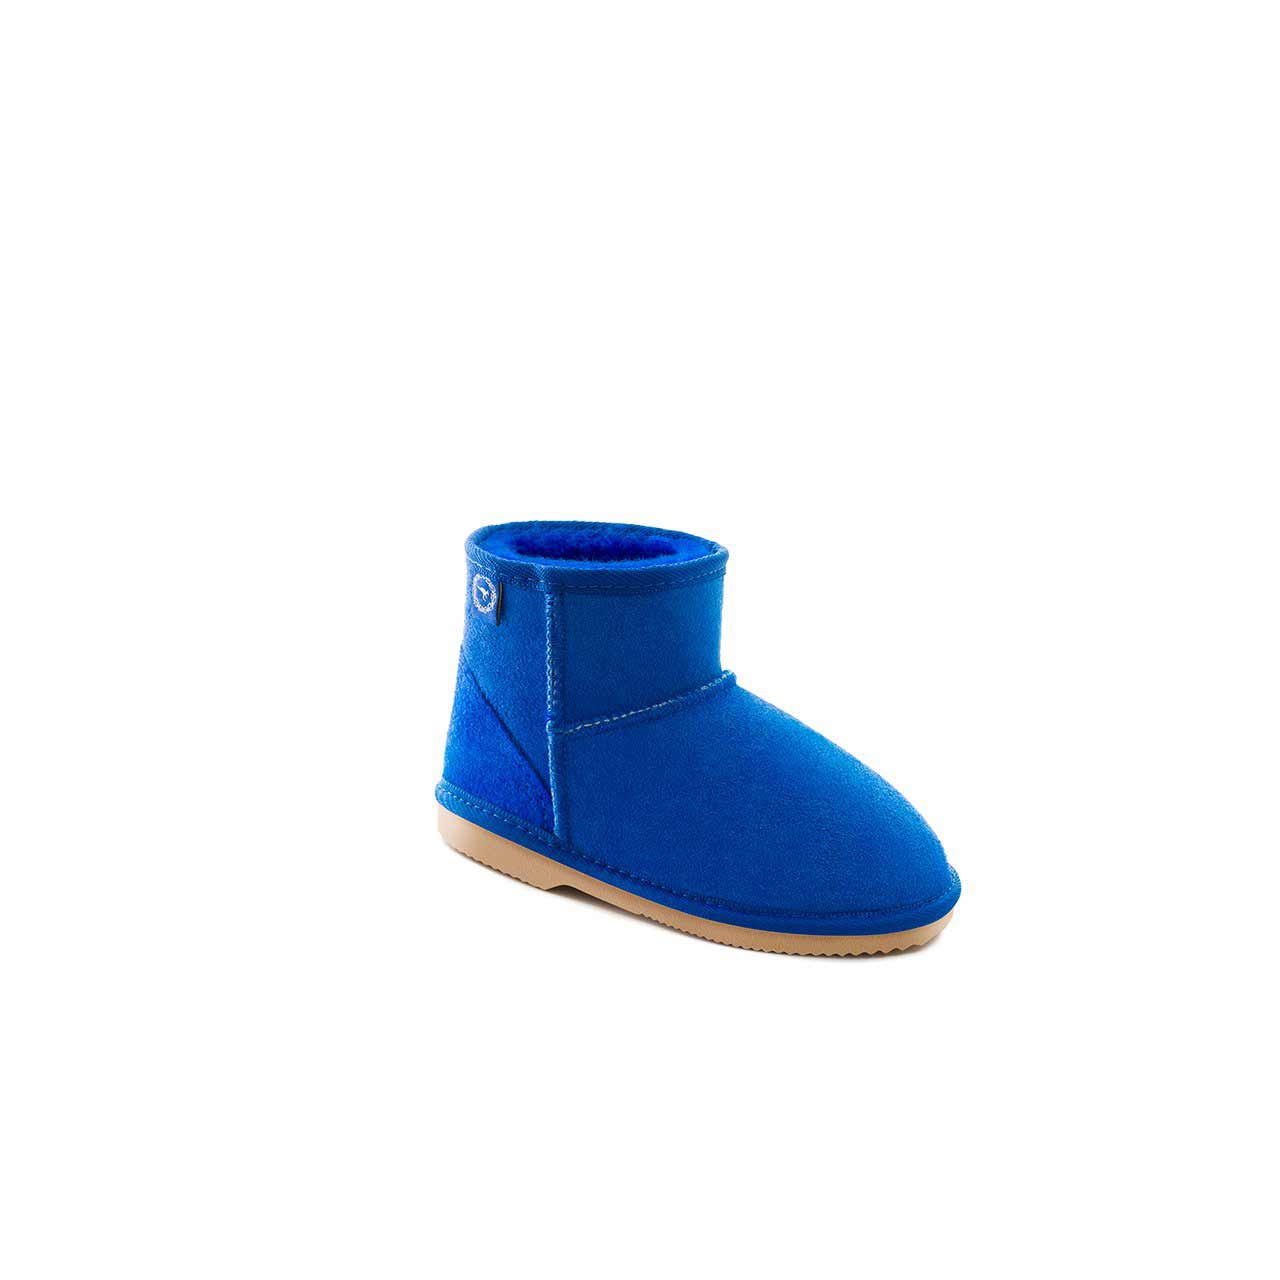 Children's Mini Boots | 100% Australian Made | Ugg Australia®